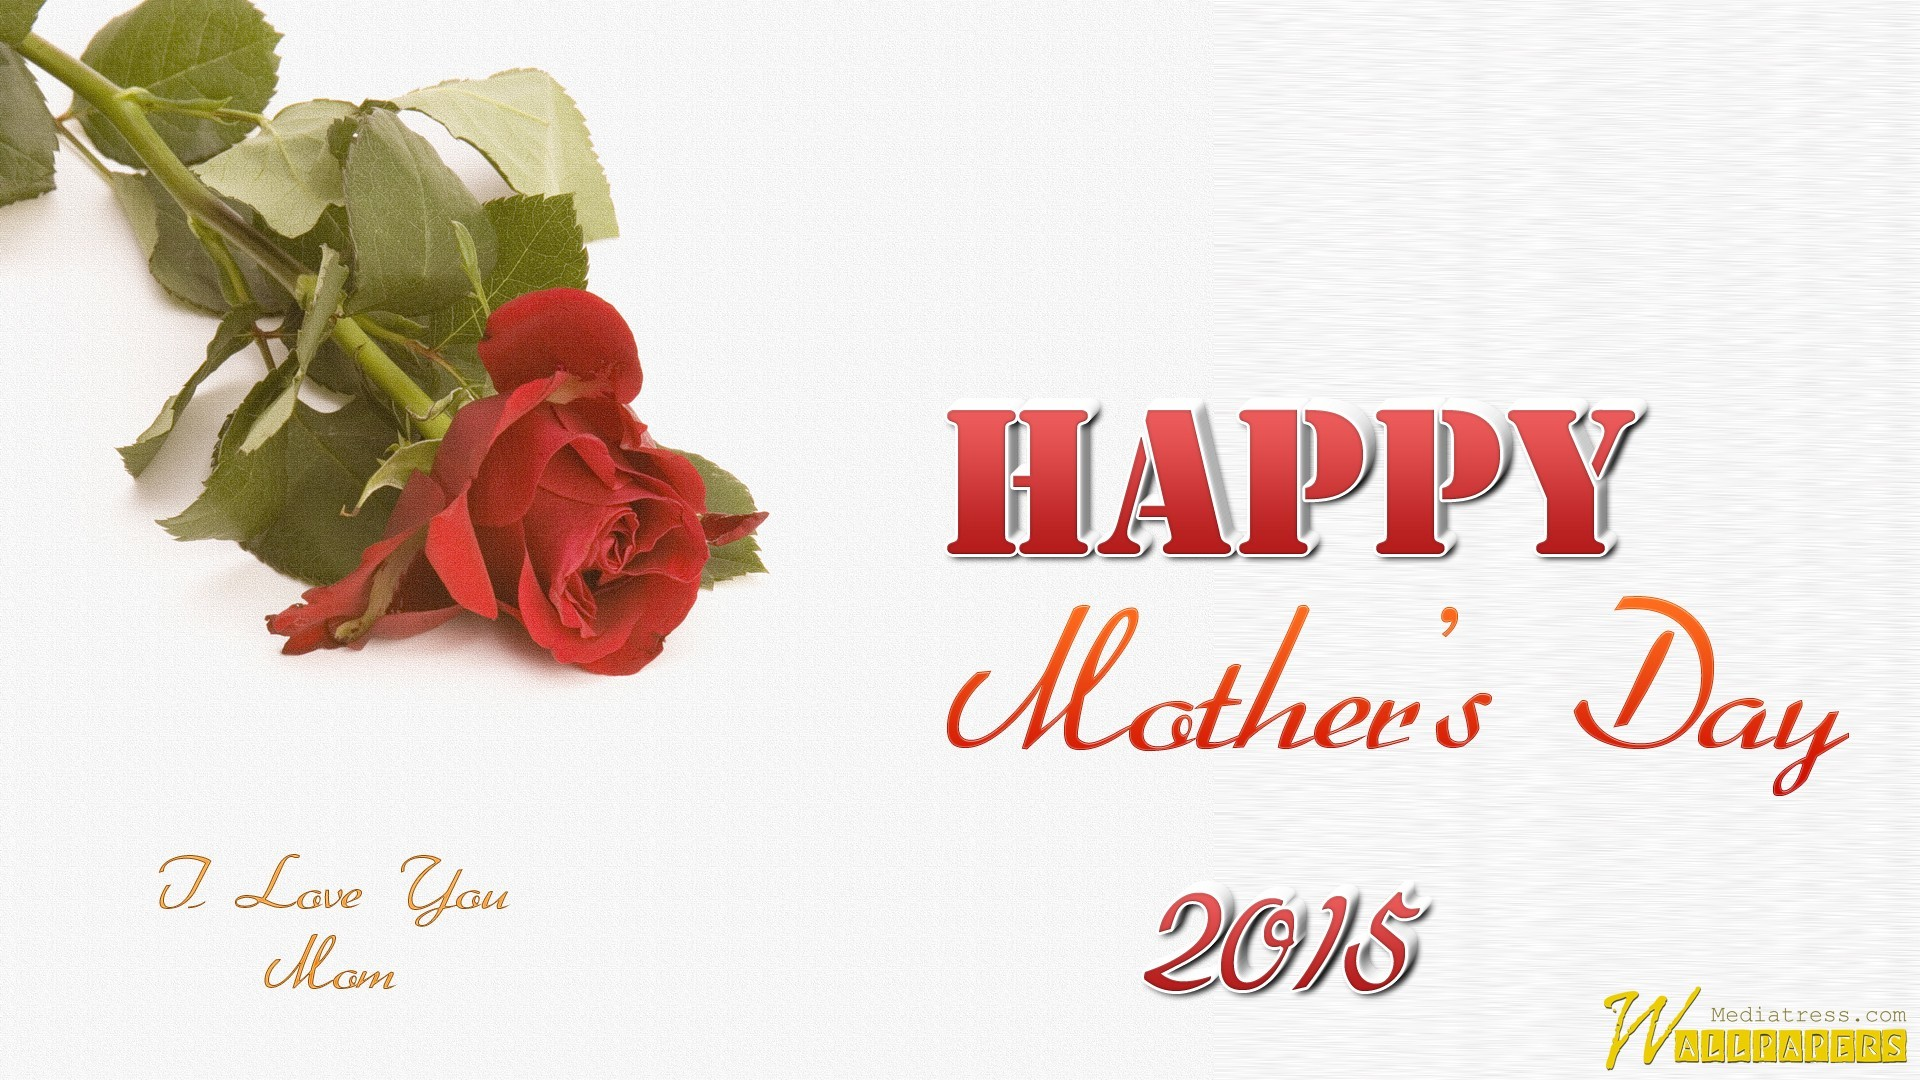 Happy Mother's Day 2015 And I Love You Mom Wallpaper